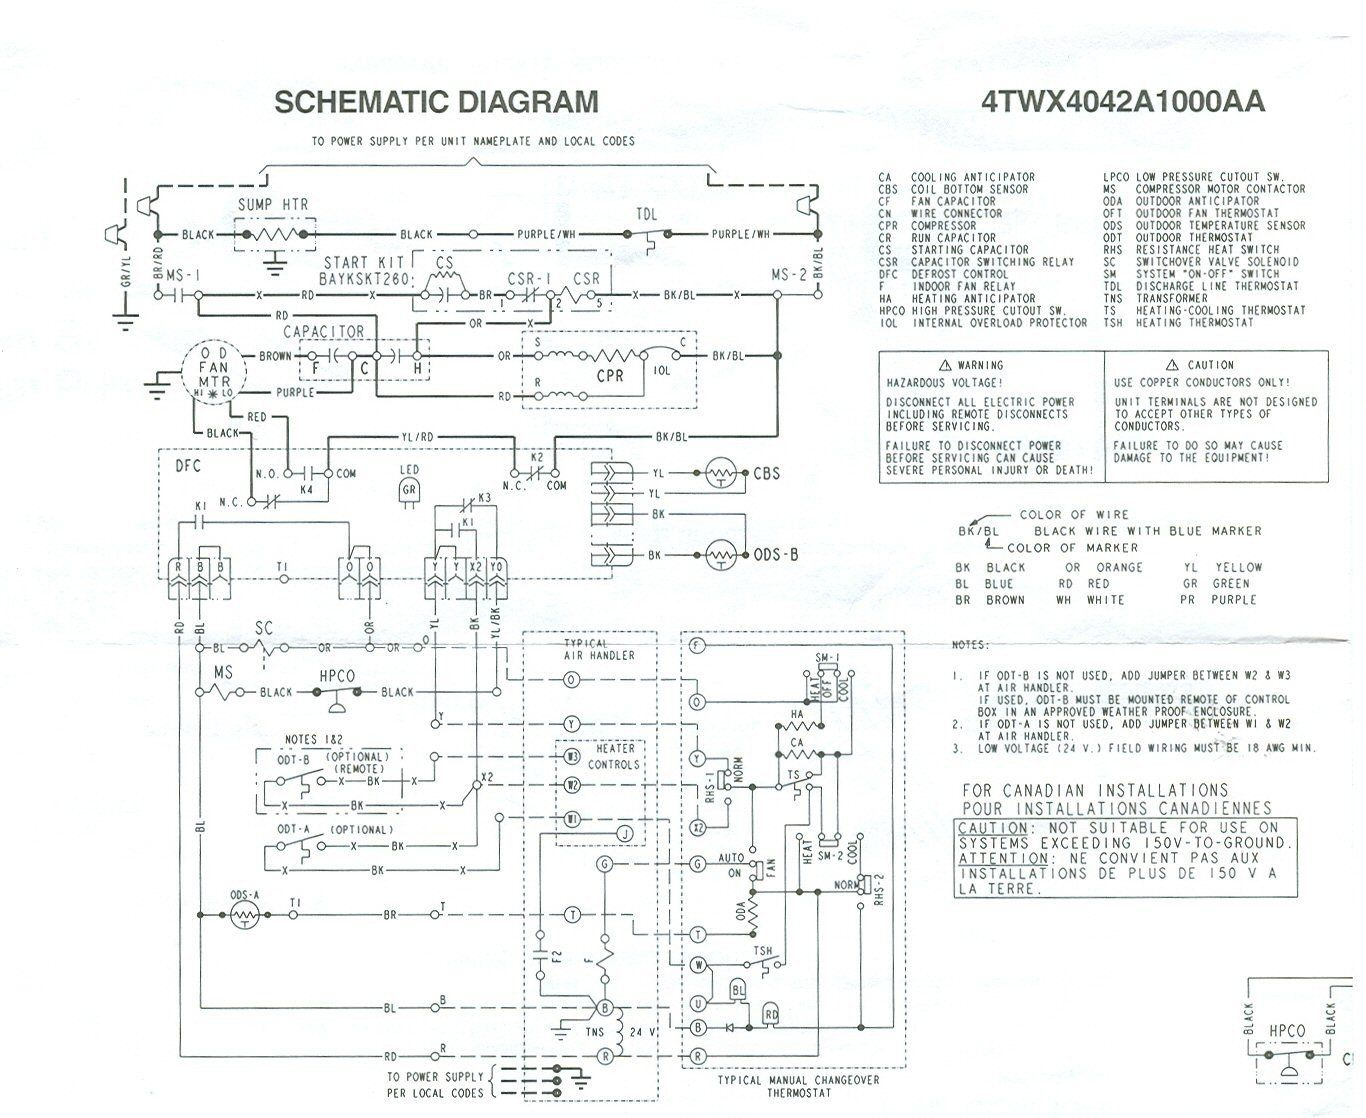 Trane Wiring Diagrams Luxury Weathertron Thermostat Wiring